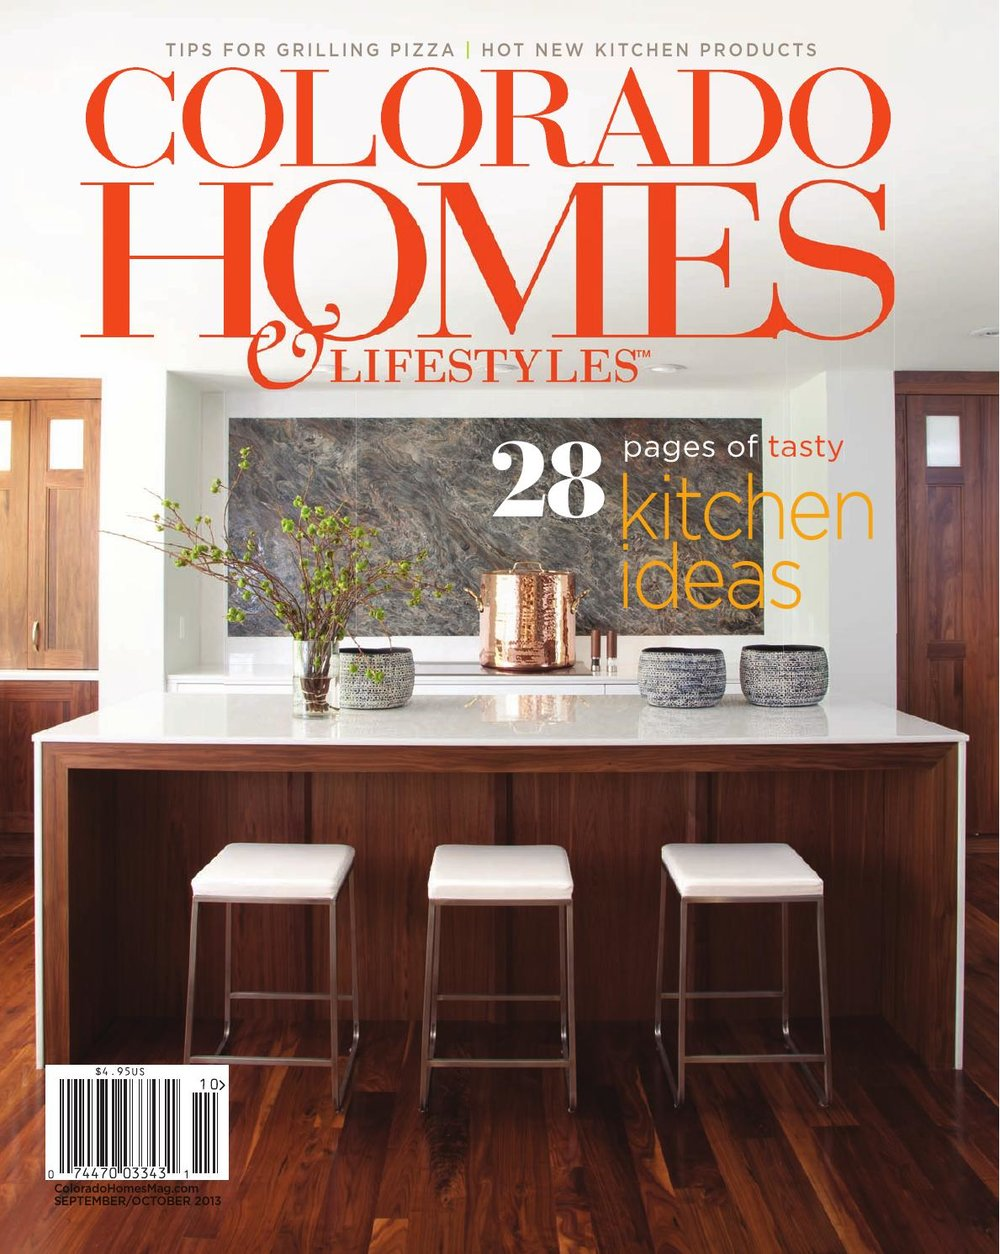 Colorado Homes U0026amp; Lifestyles September/October 2013